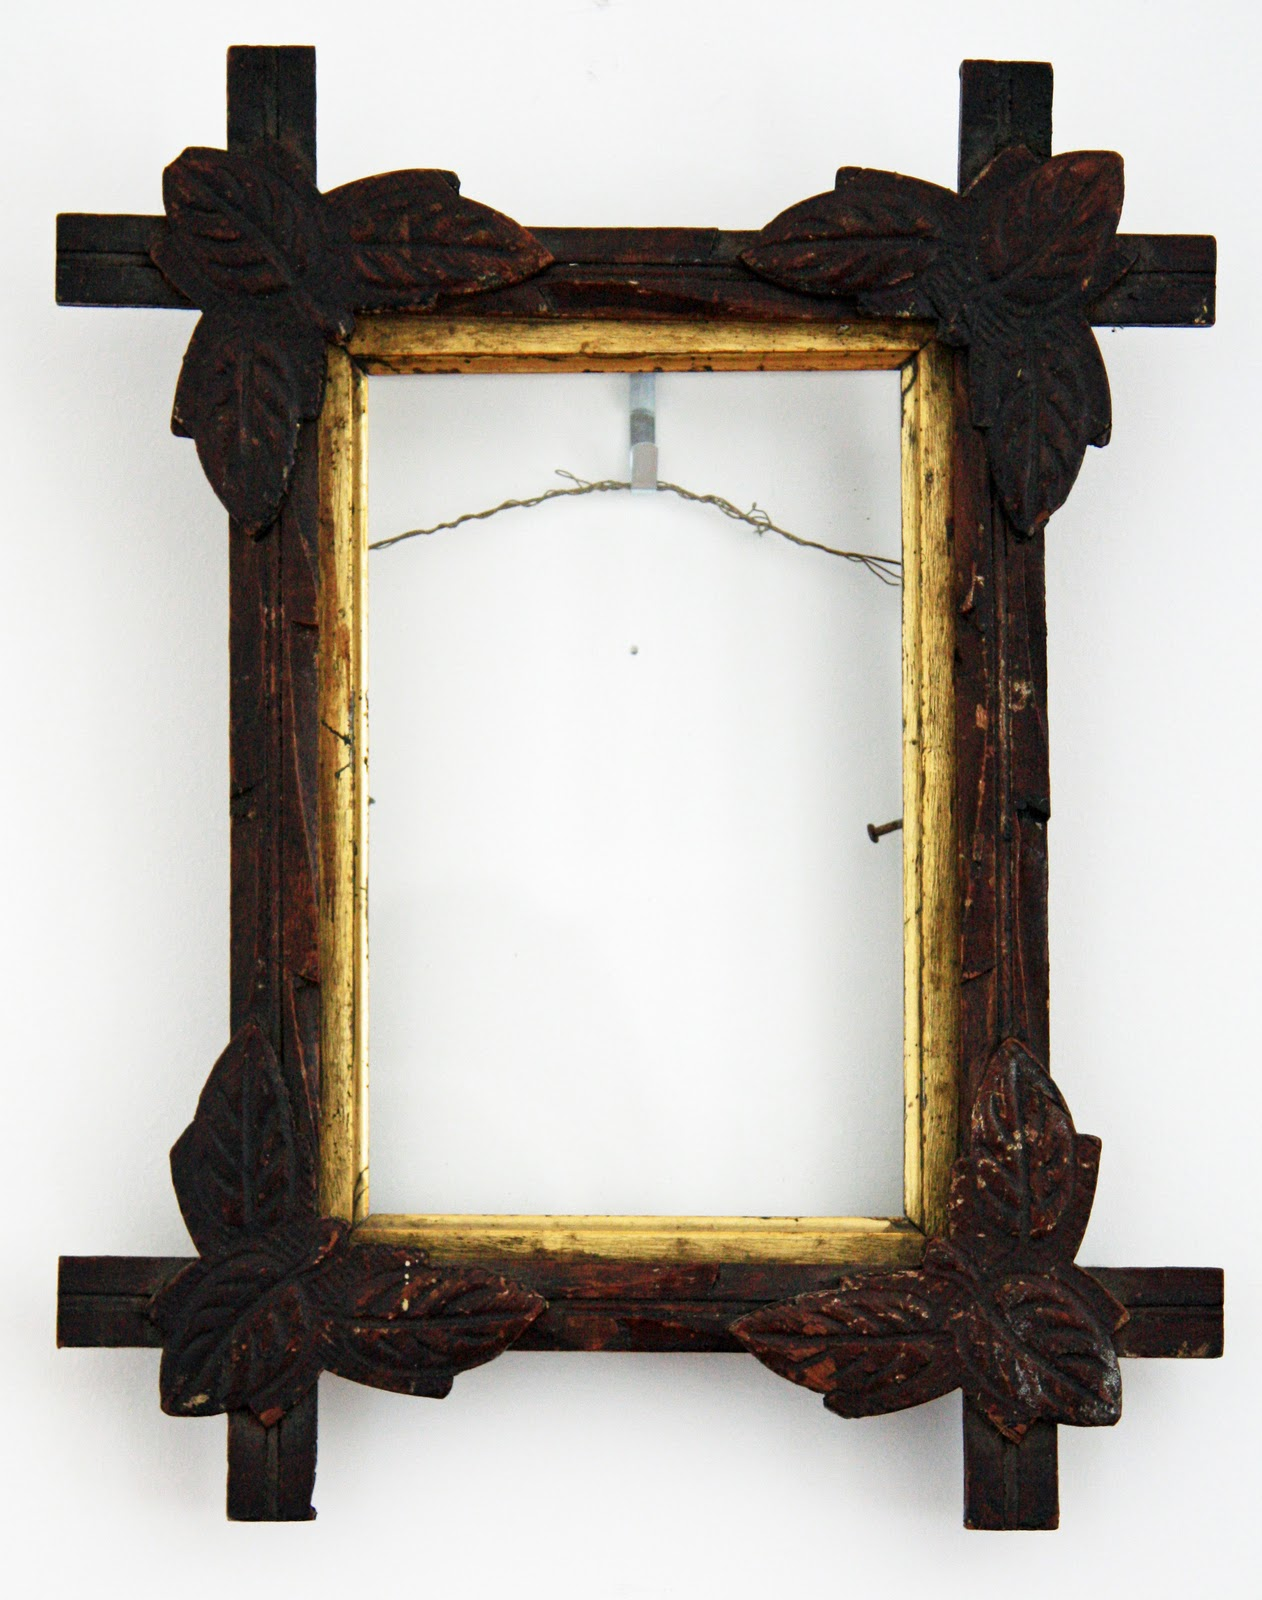 i love the feel of these old rustic frames its sometimes hard to find these frames with all of their leaves in tact but when you do they compliment